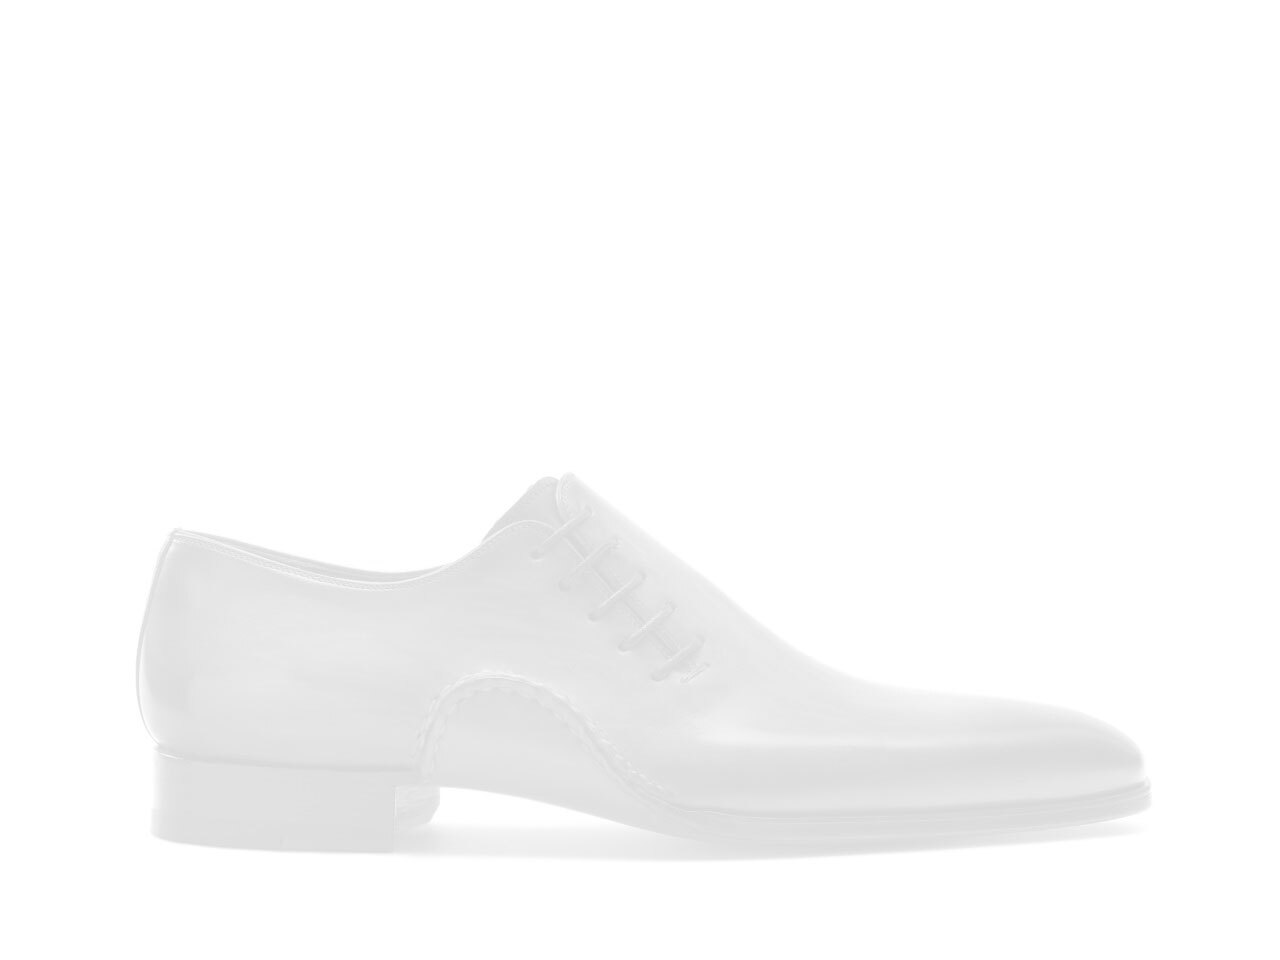 Side view of the Magnanni Belago II Cuero Men's Oxford Shoes